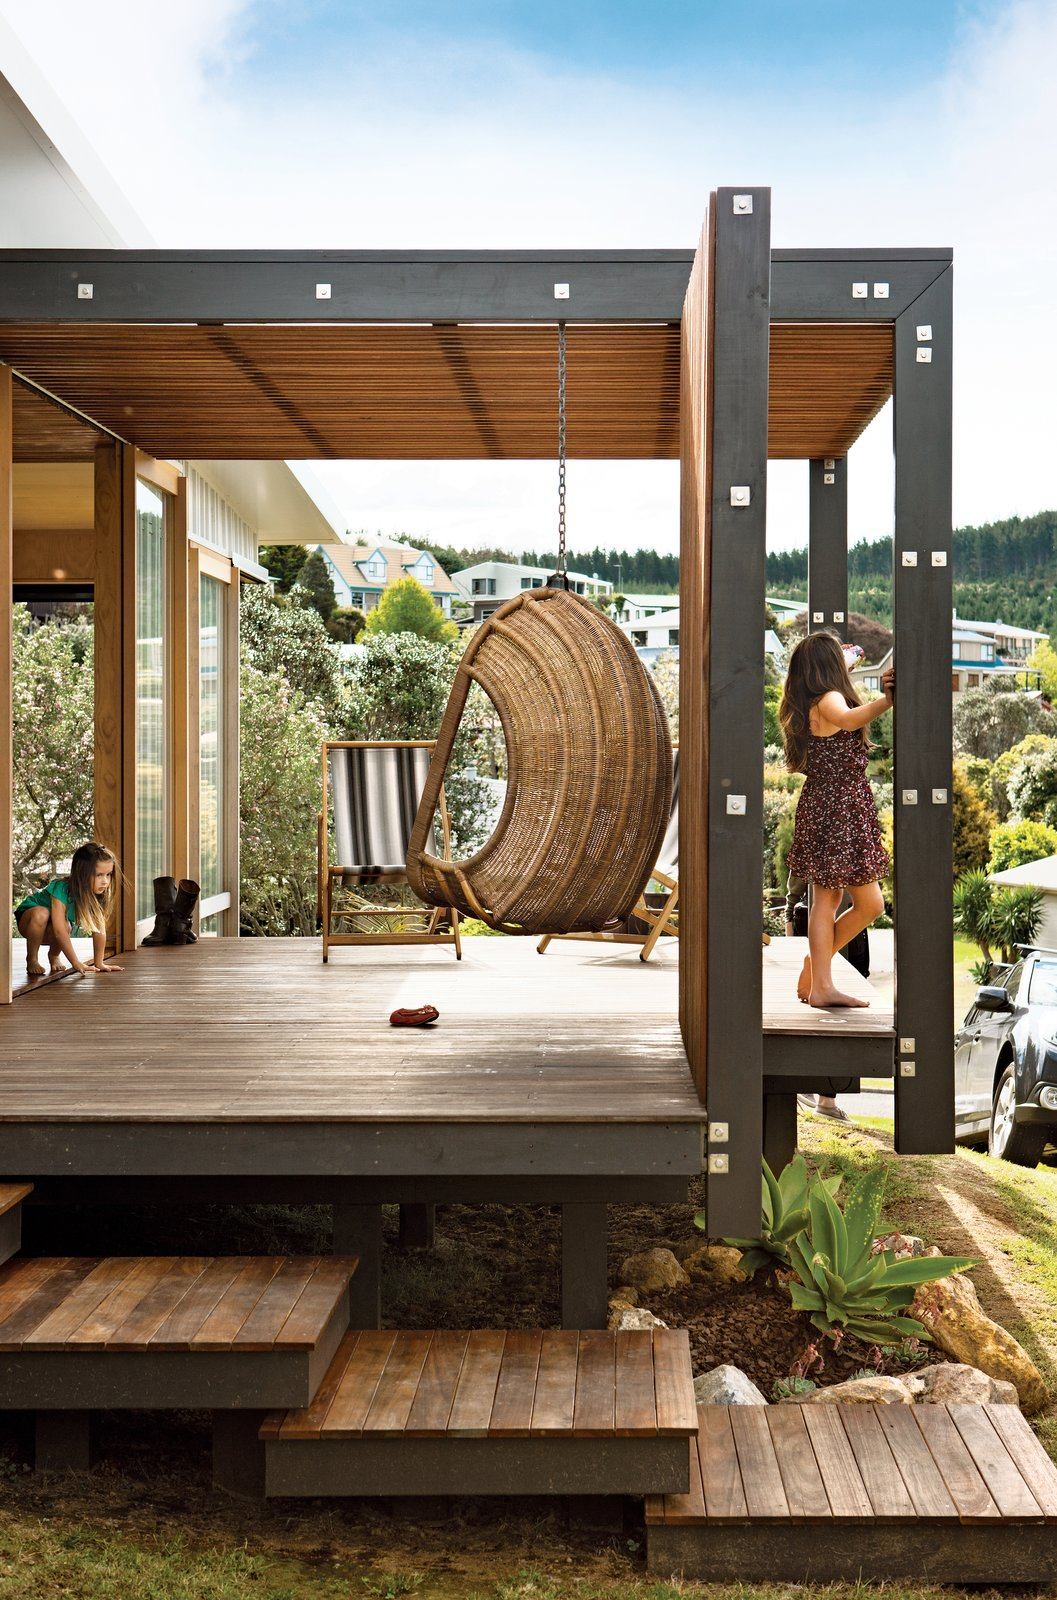 The topography proved challenging so the designers elevated the house on piers.  New Zealand Getaways by Andrea Smith from A Compact Prefab Vacation Home